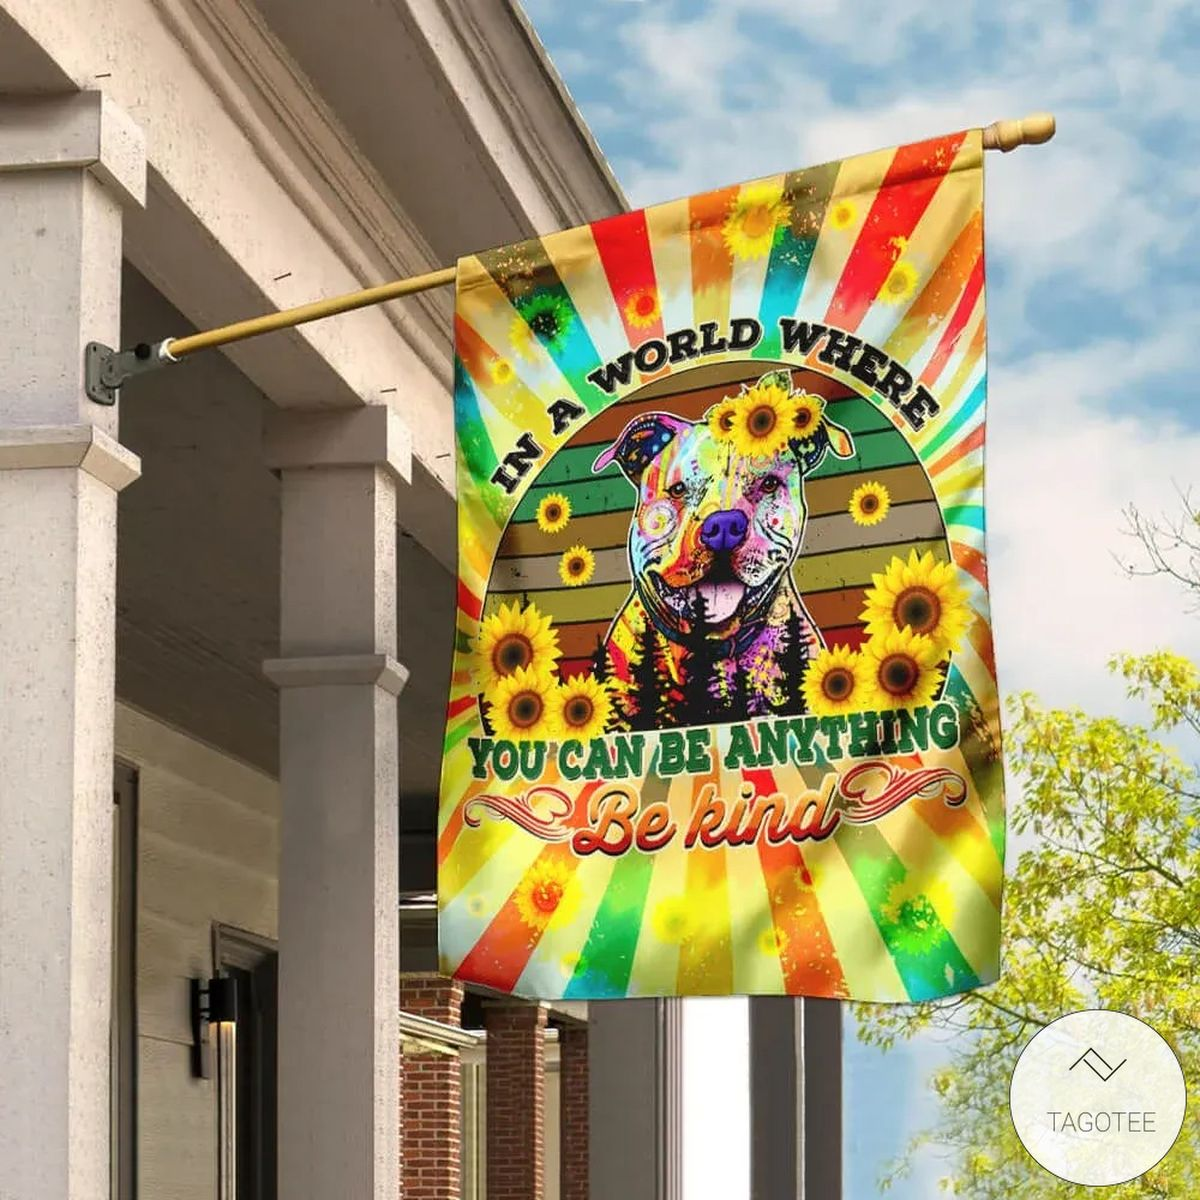 In A World Where You Can Be Anything Be Kind Hippie Peace Pitbull Flag